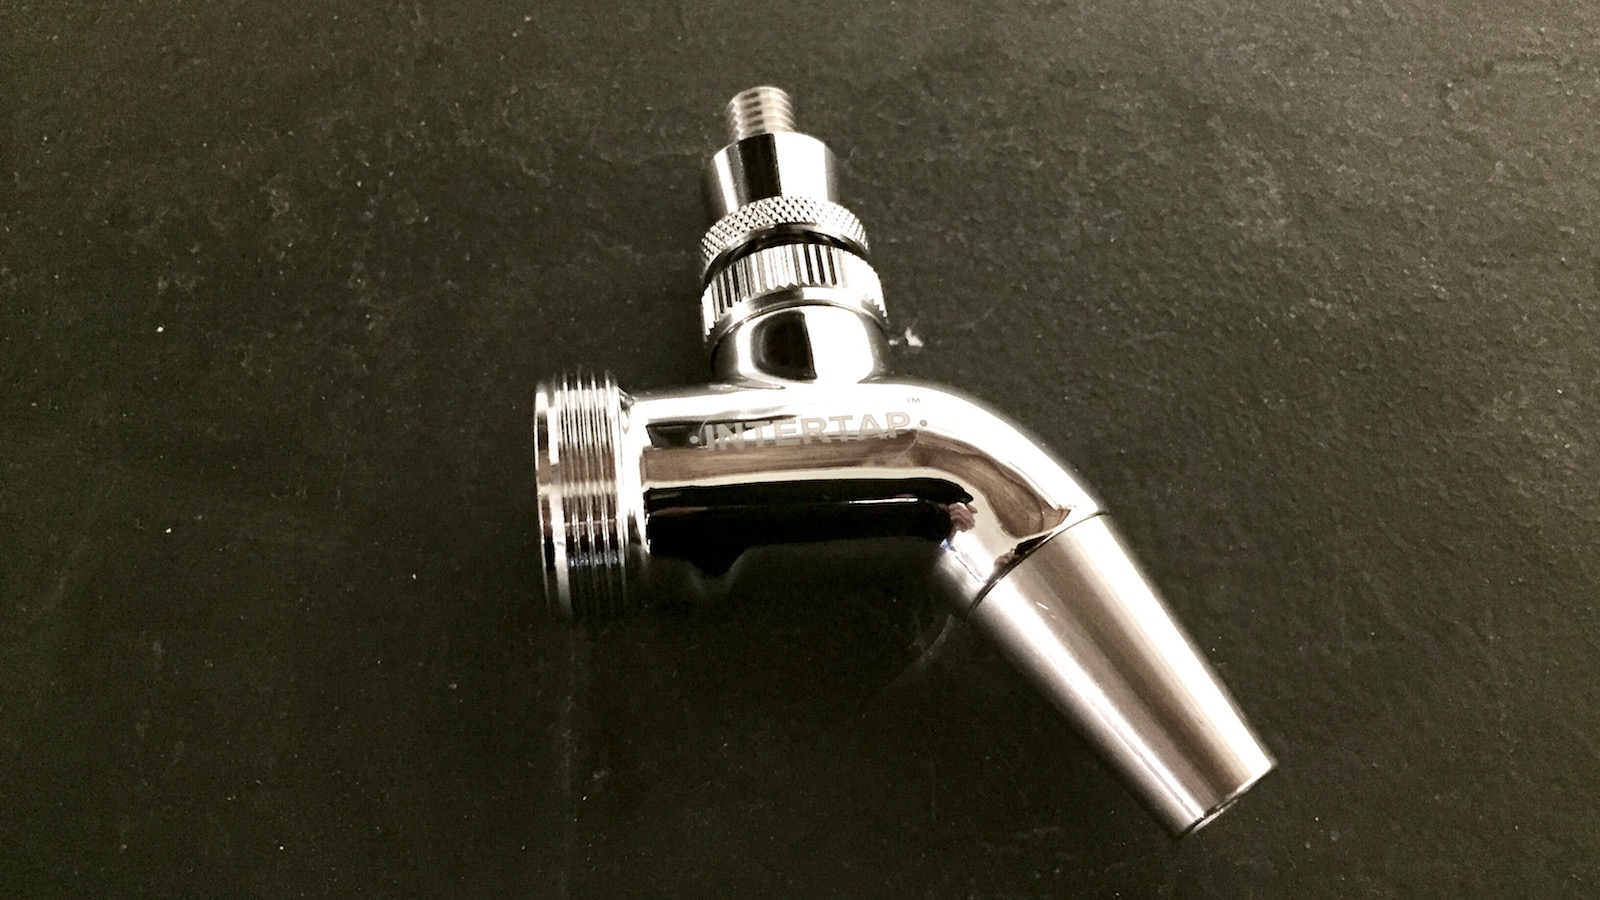 Intertap Forward Sealing Faucets | Product Review | Brülosophy